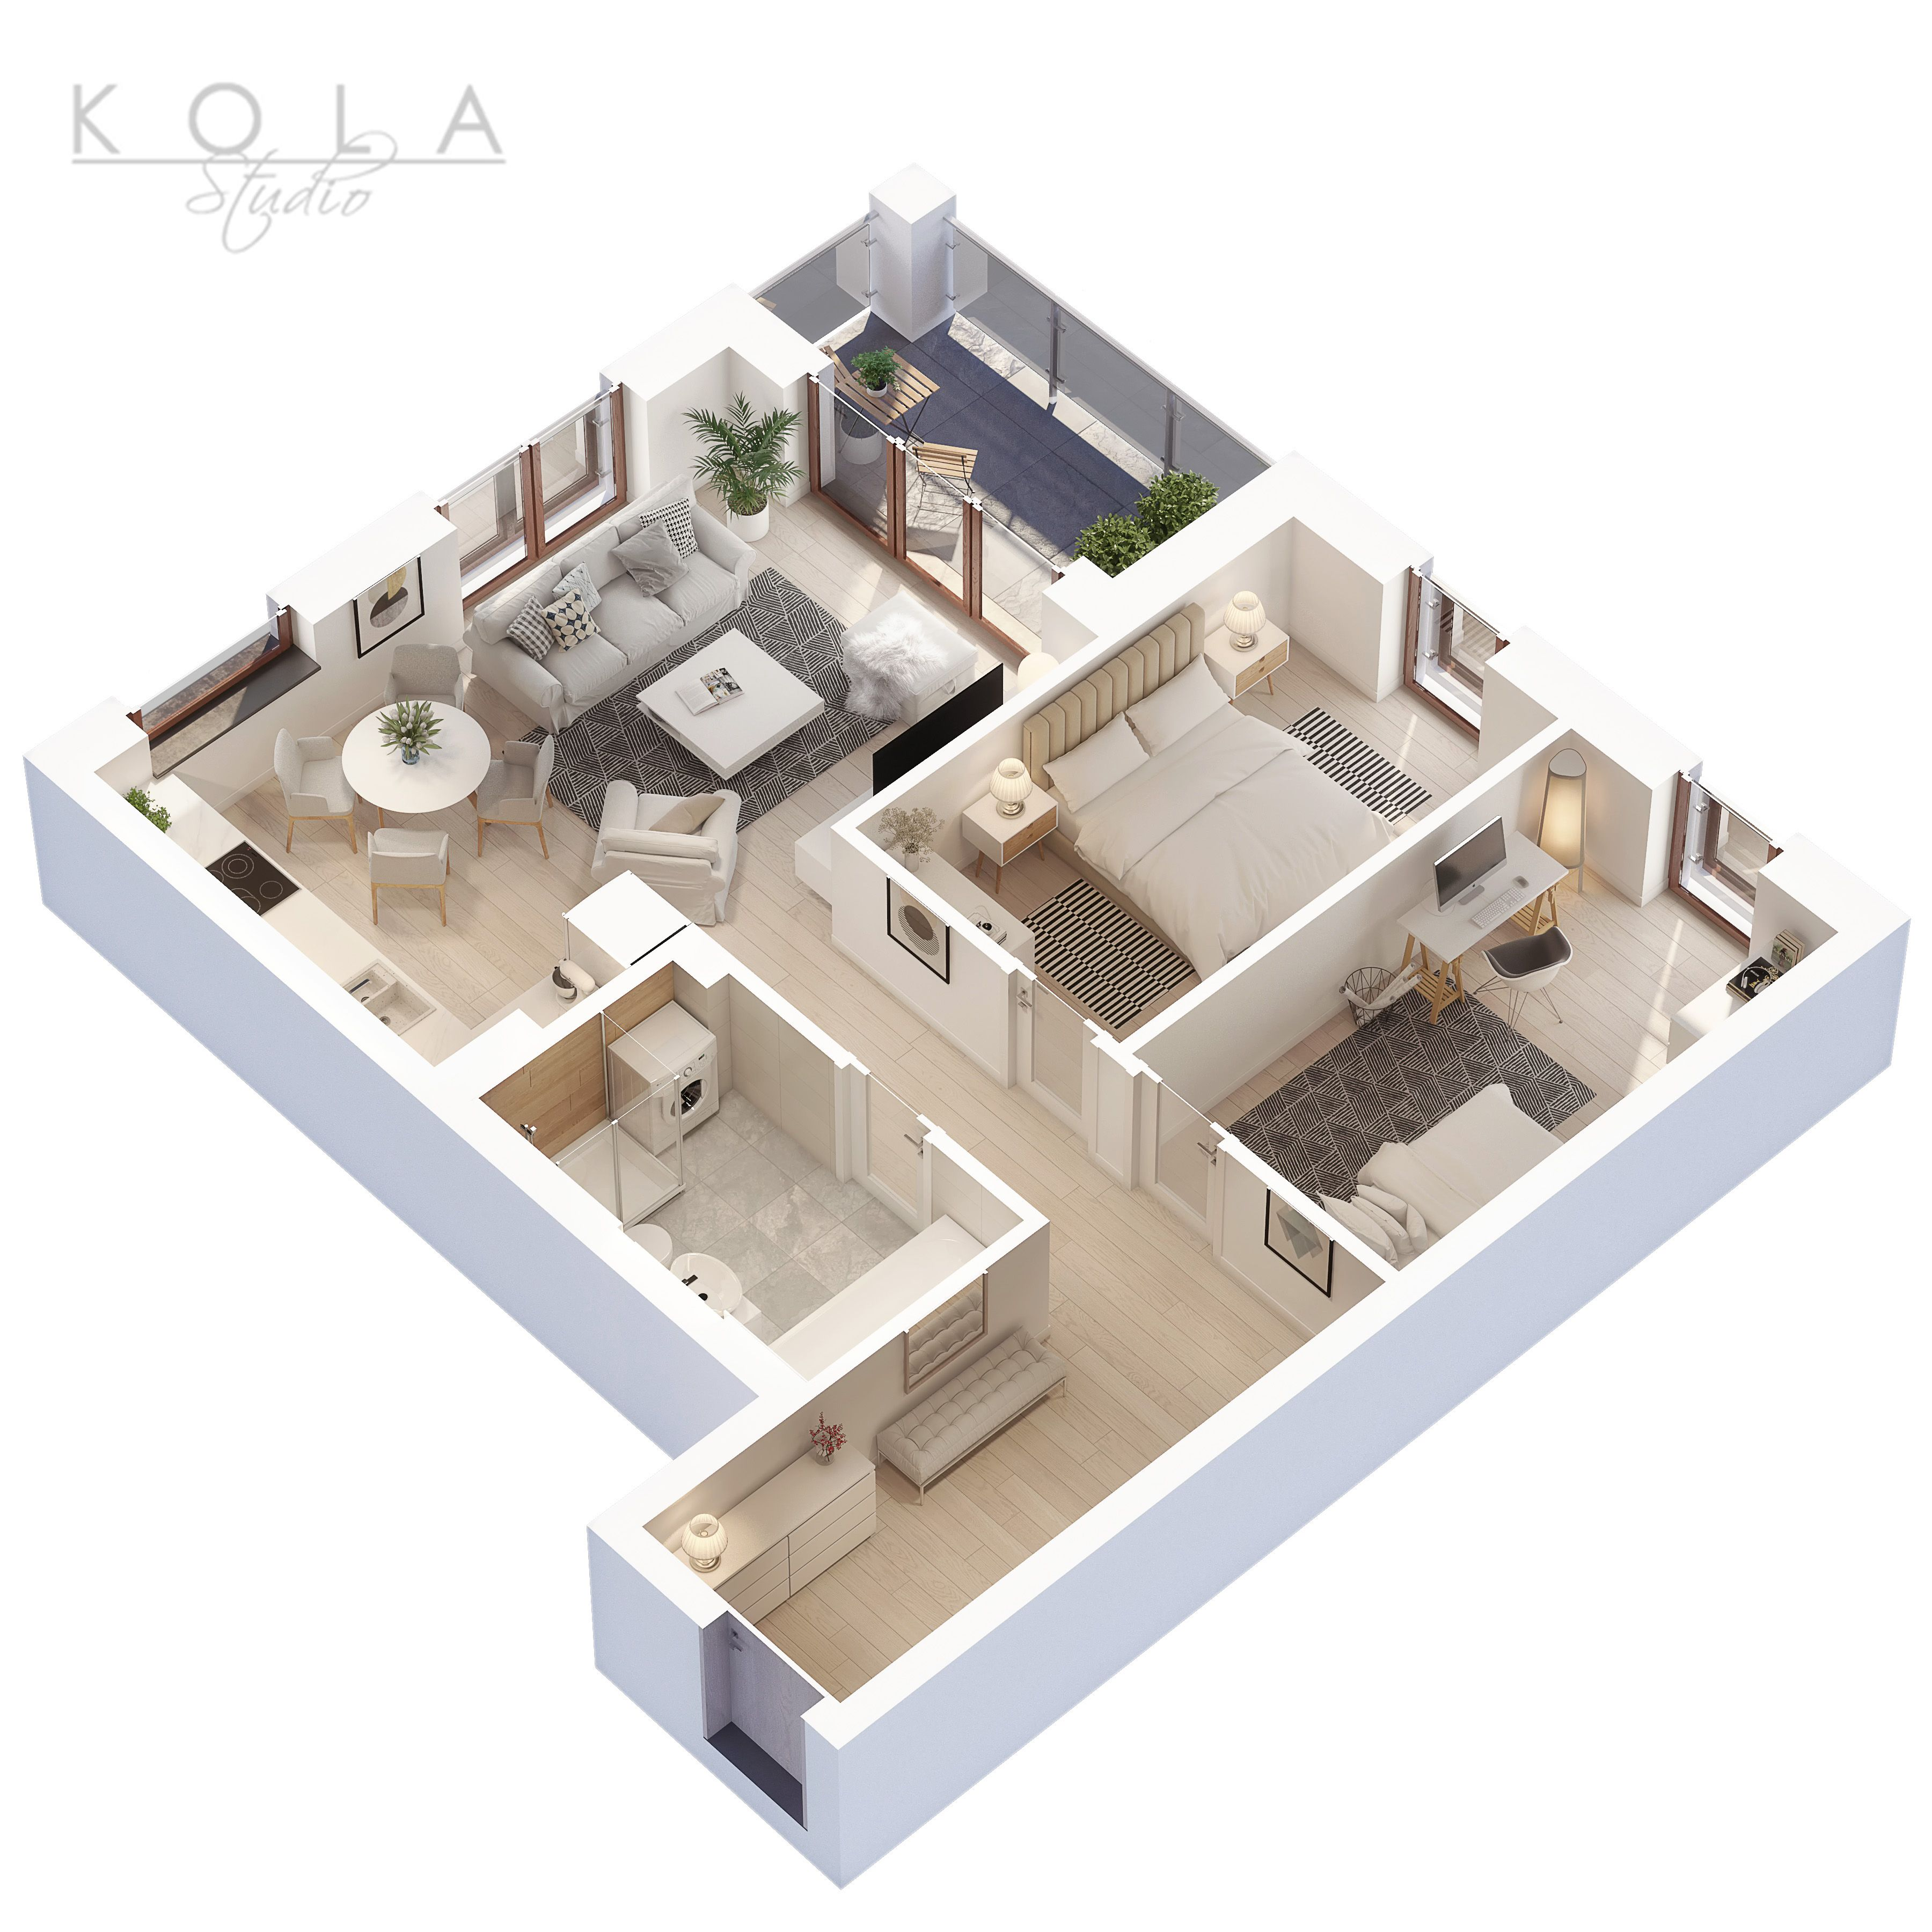 3d Floor Plan Of A 3 Bedroom Apartment For Sale Designed In A Modern Scandinavian Style Visu House Floor Design Hotel Room Design Small Apartment Floor Plans